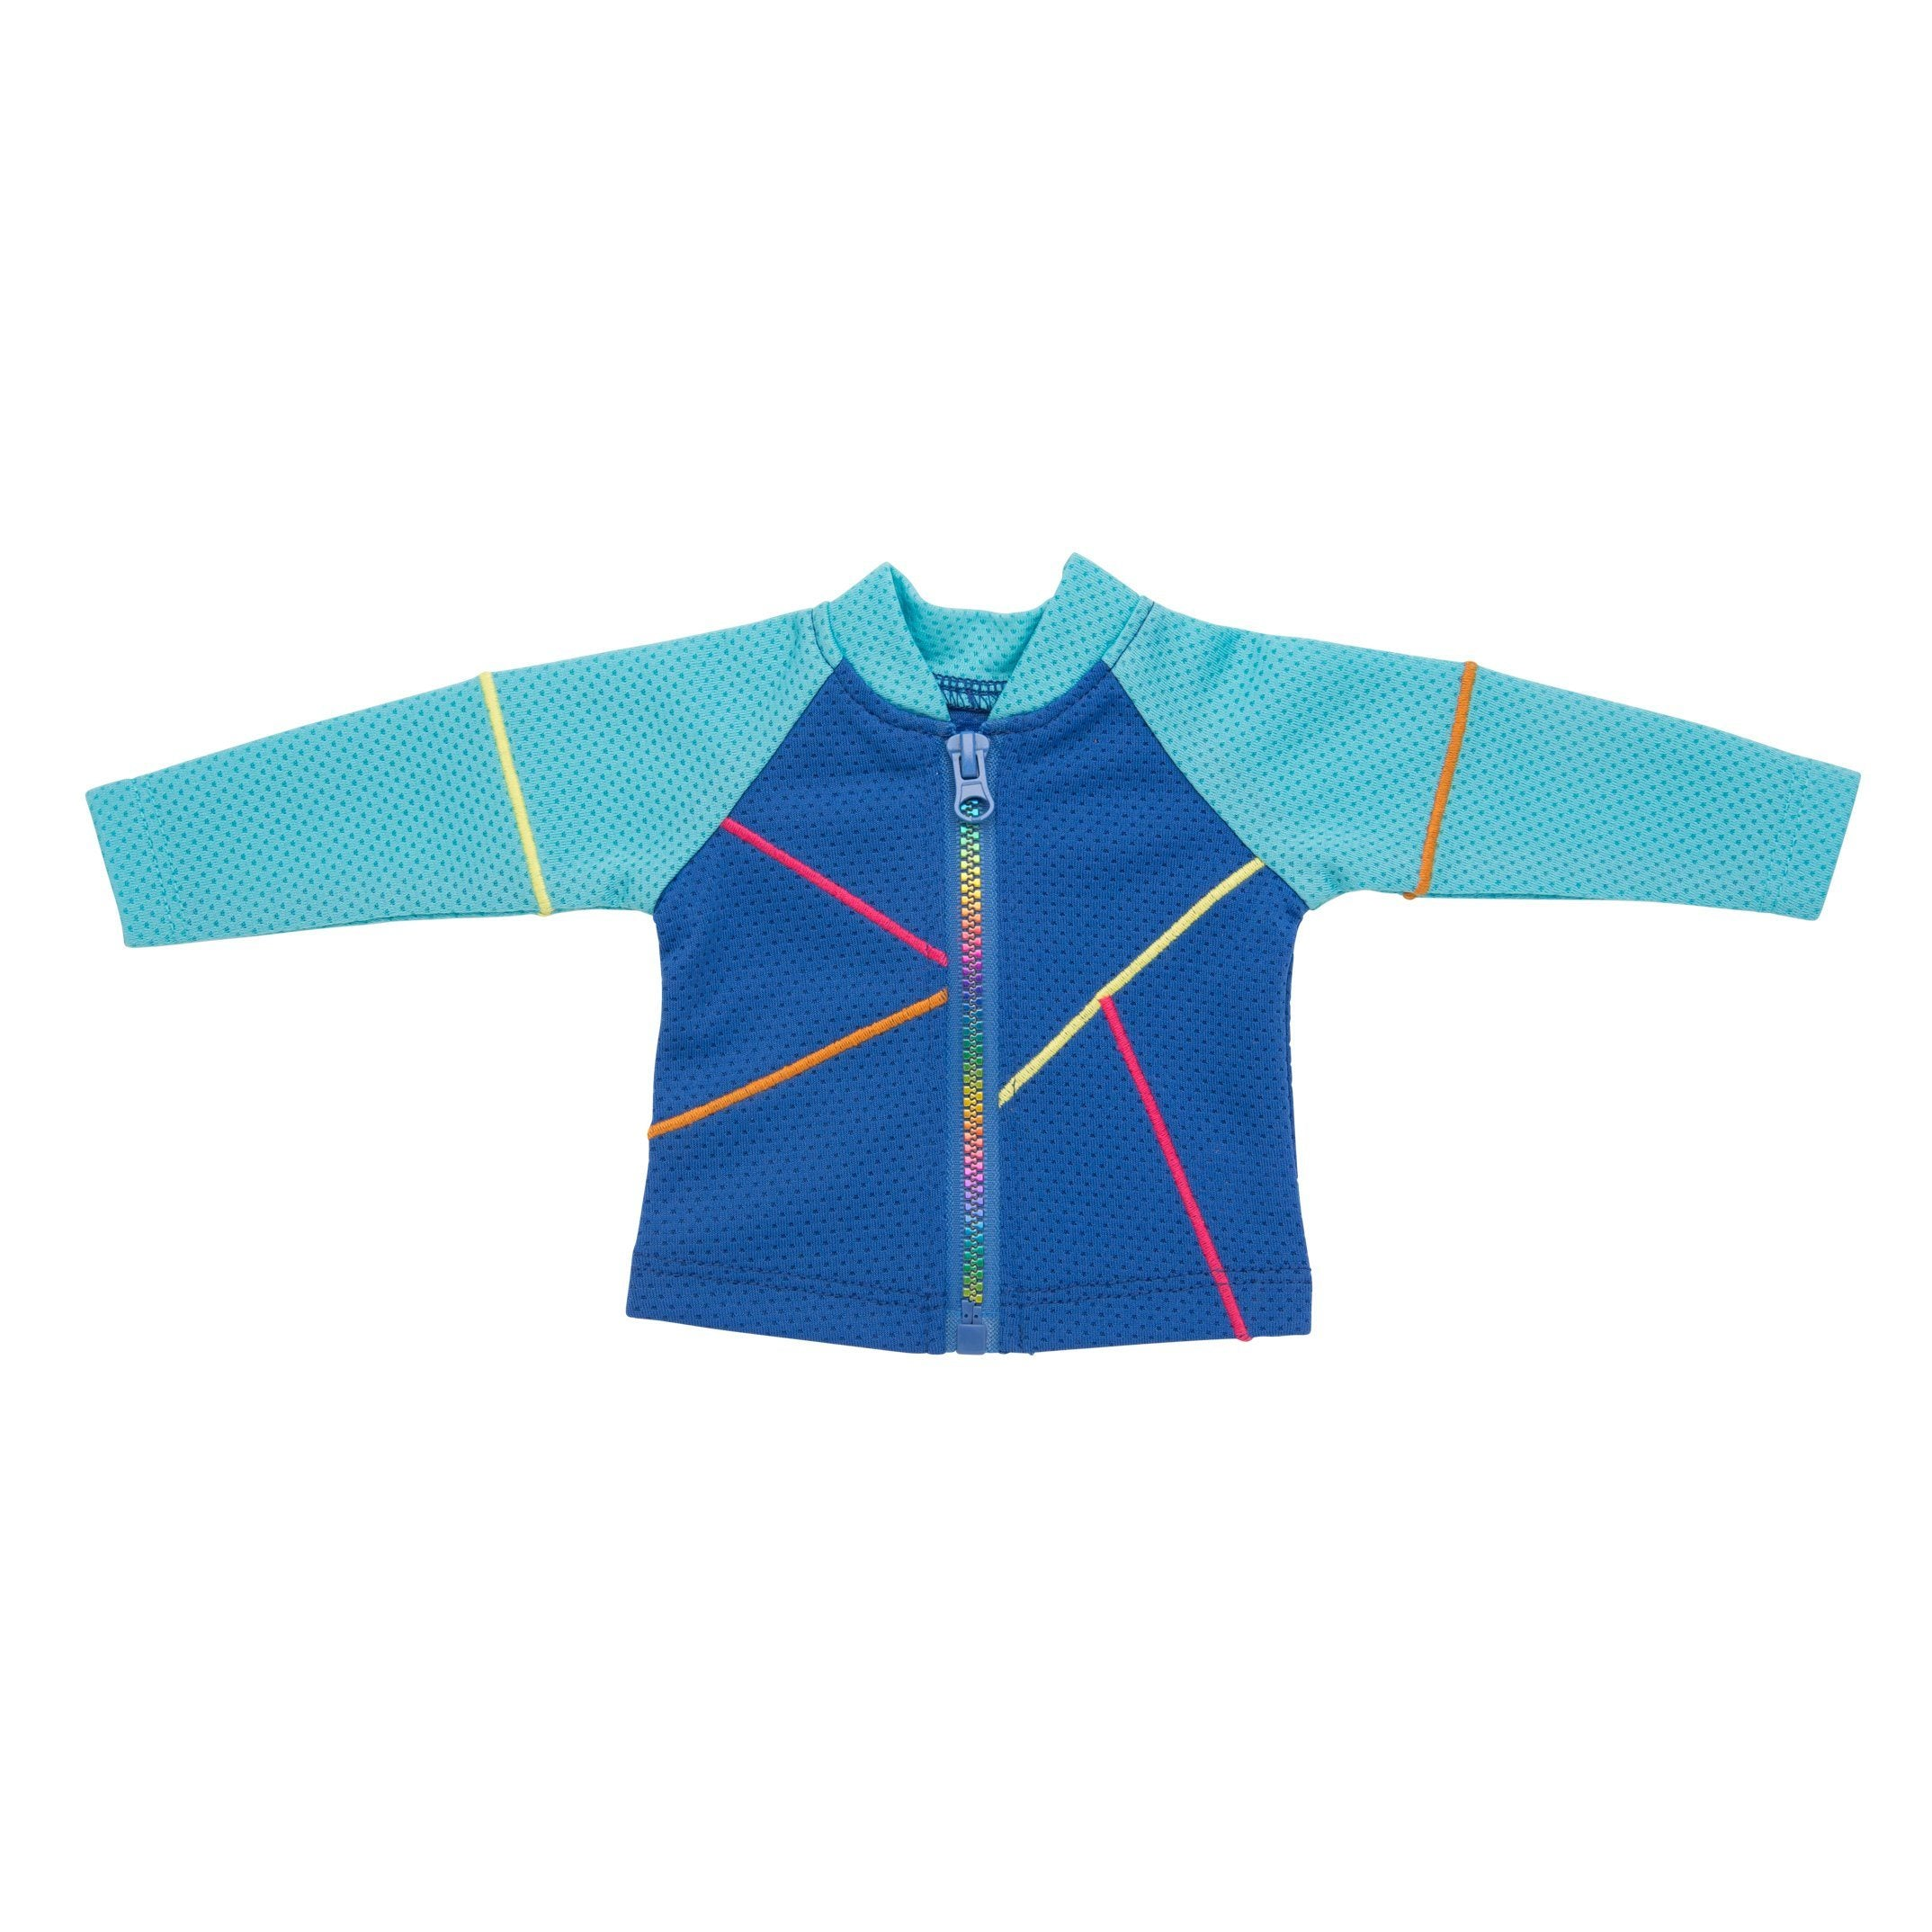 Blue mesh jacket with colourful stitching and rainbow zipper fits all 18 inch dolls.